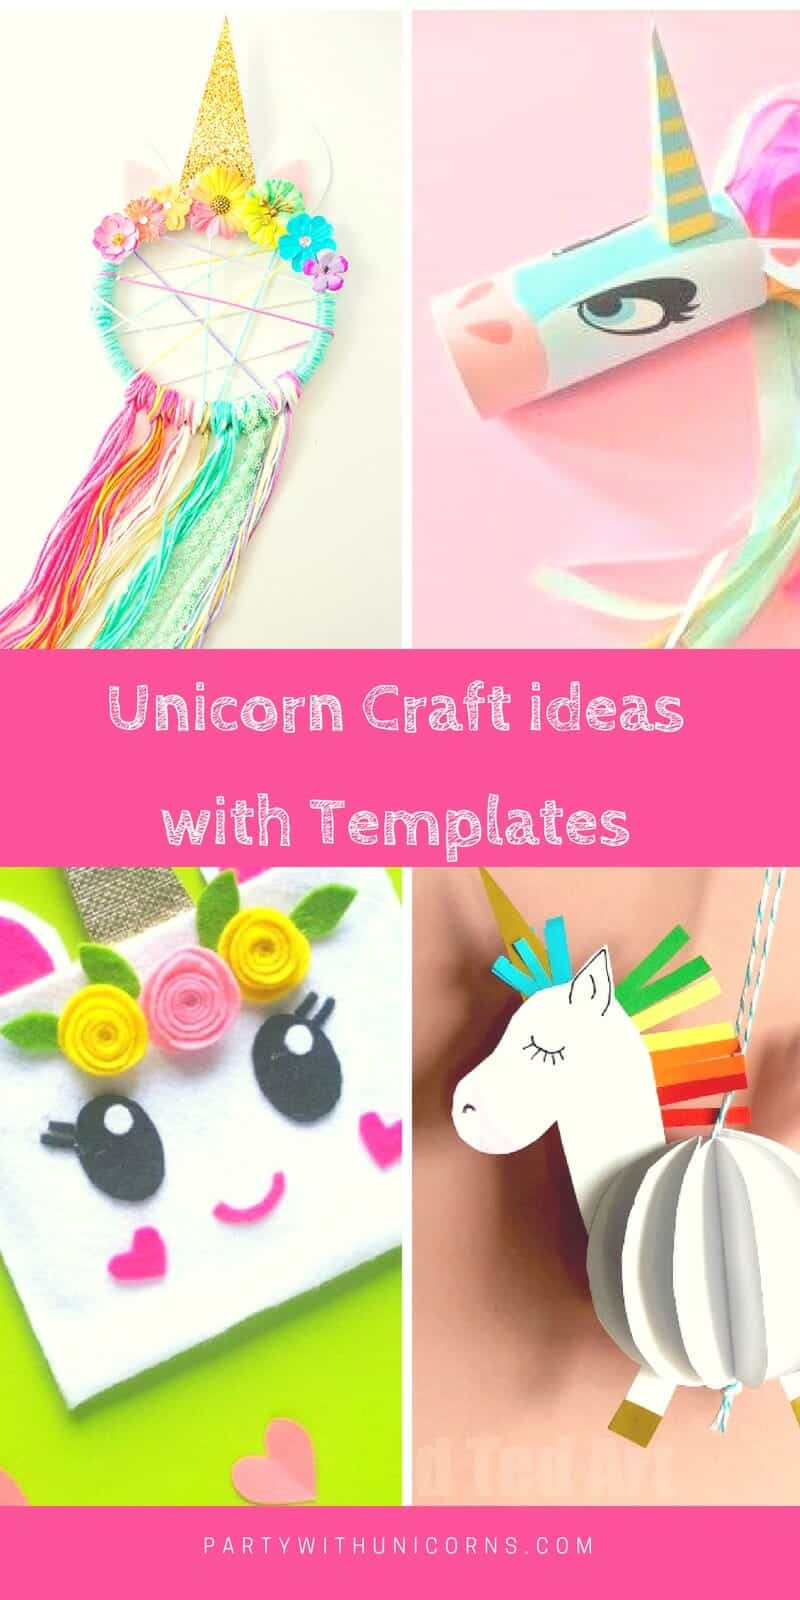 Unicorn Craft ideas